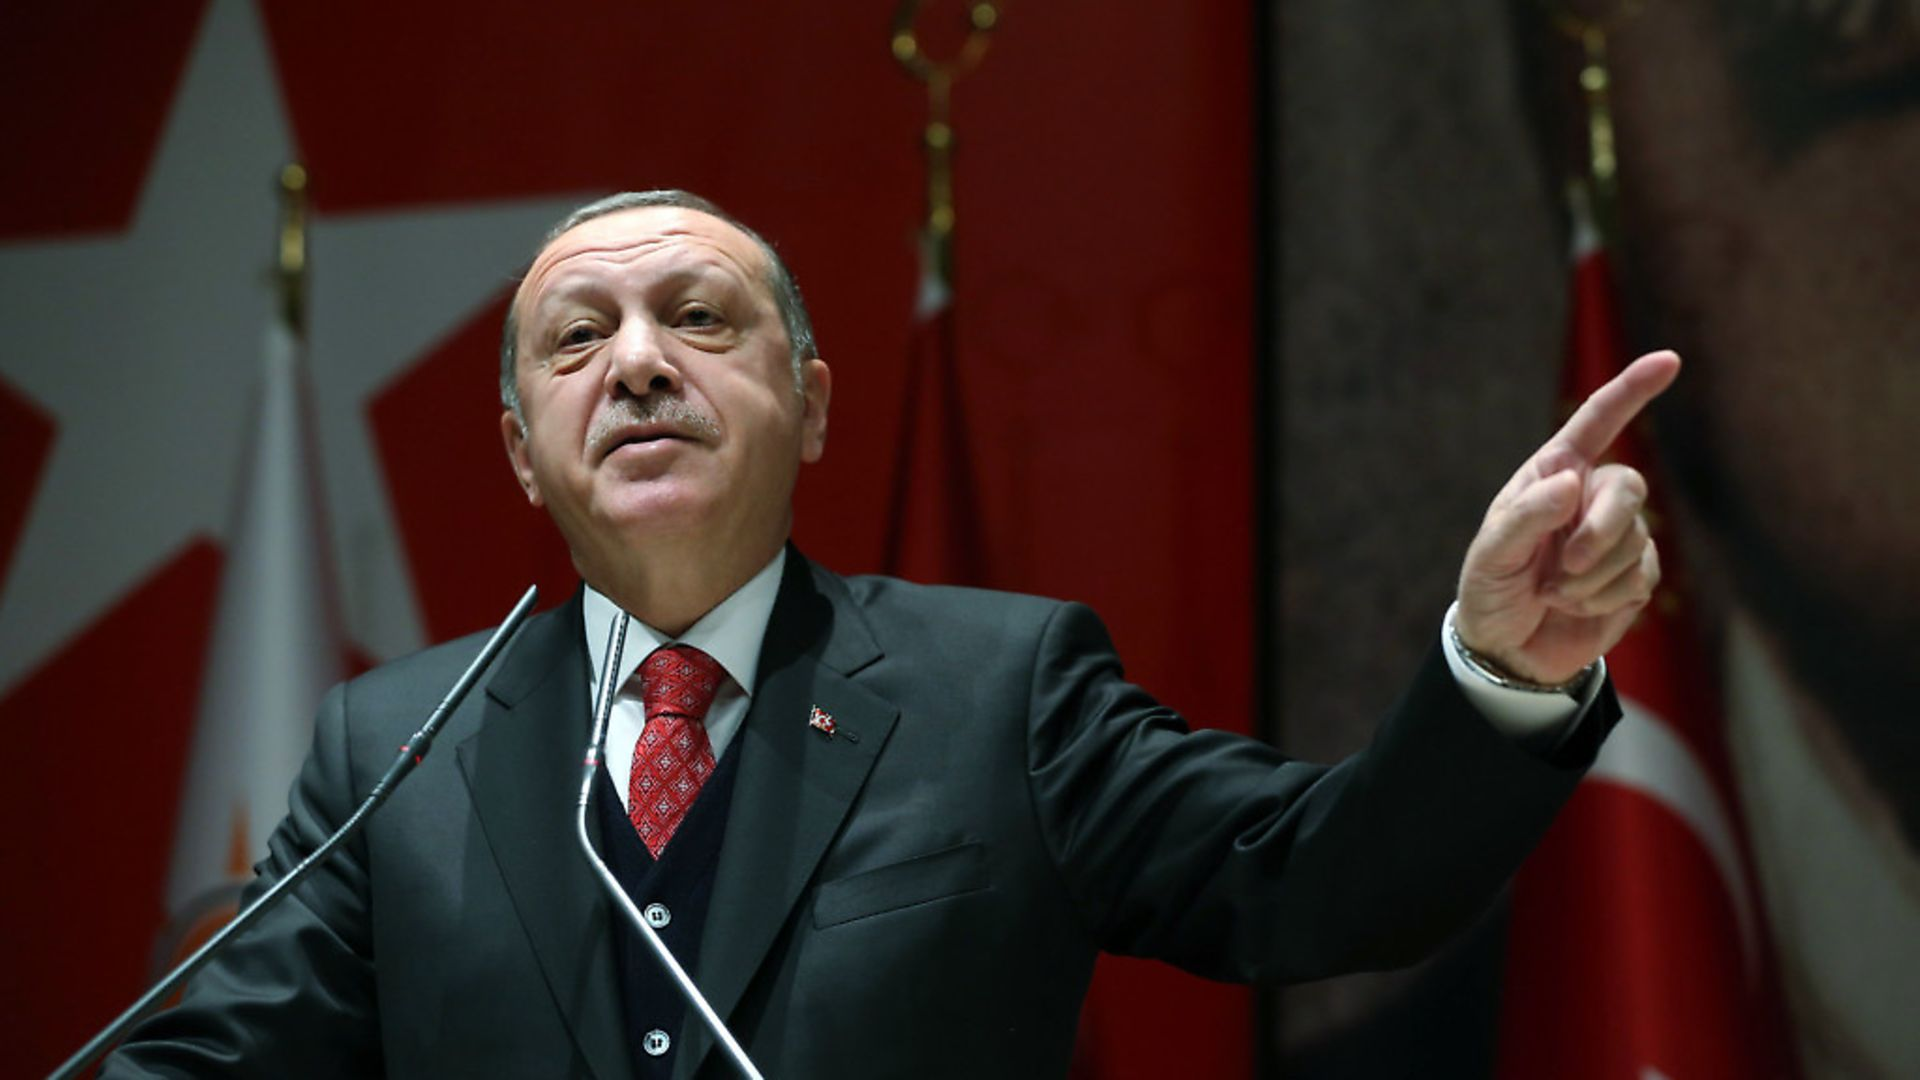 Turkish president Recep Tayyip Erdogan (question eight) Credit: Newscom/Cover Images - Credit: Newscom/Cover Images